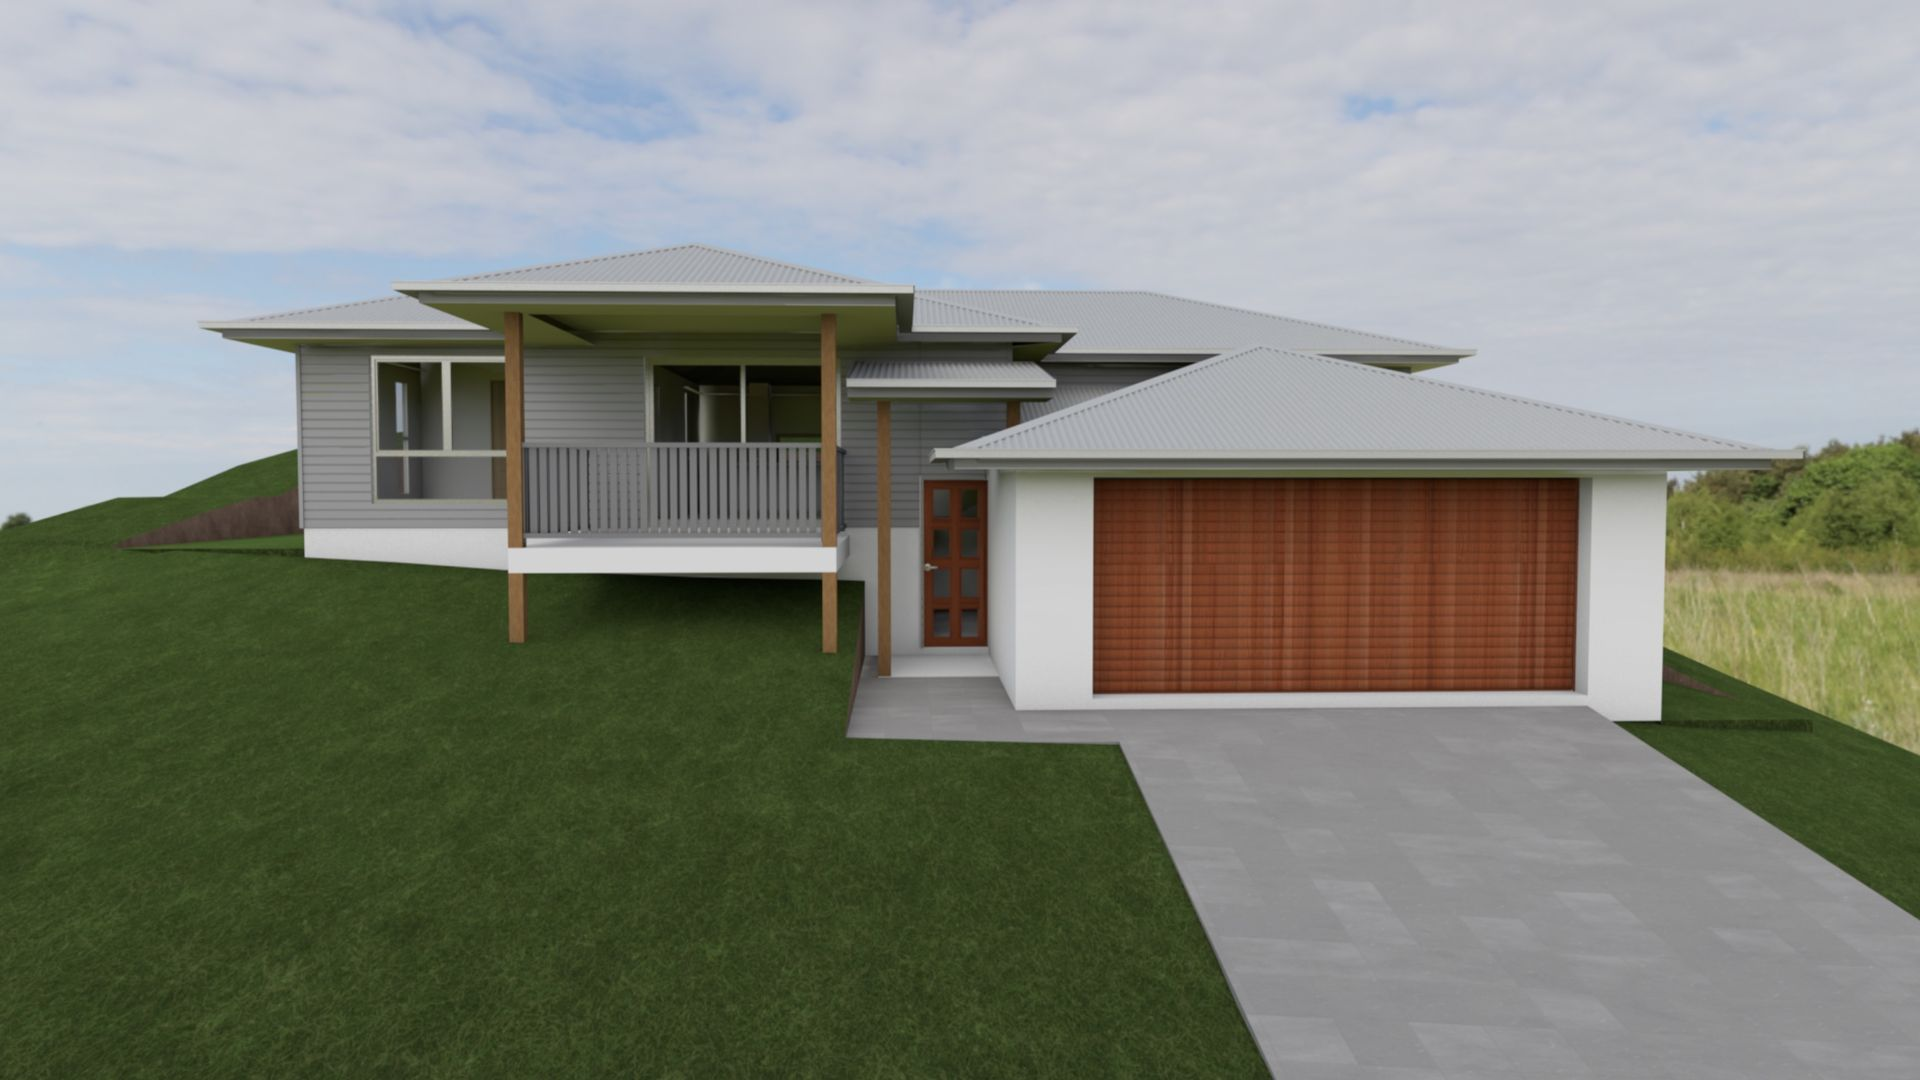 28 Willowood Crescent, Nambour QLD 4560